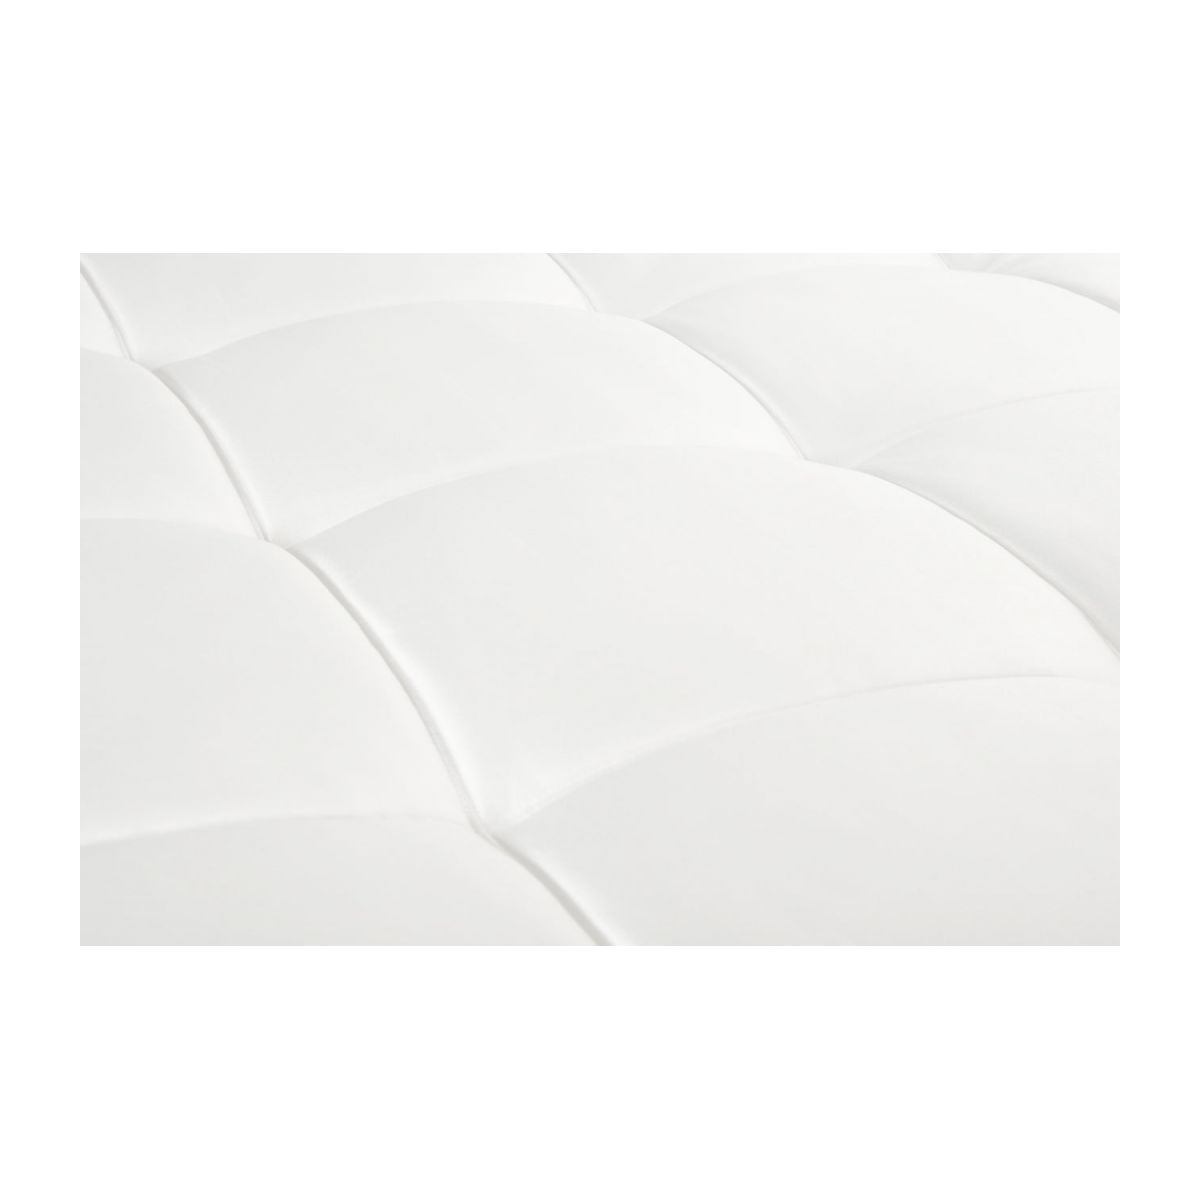 Spring mattress, width 26 cm - 180x200cm - firm support n°4